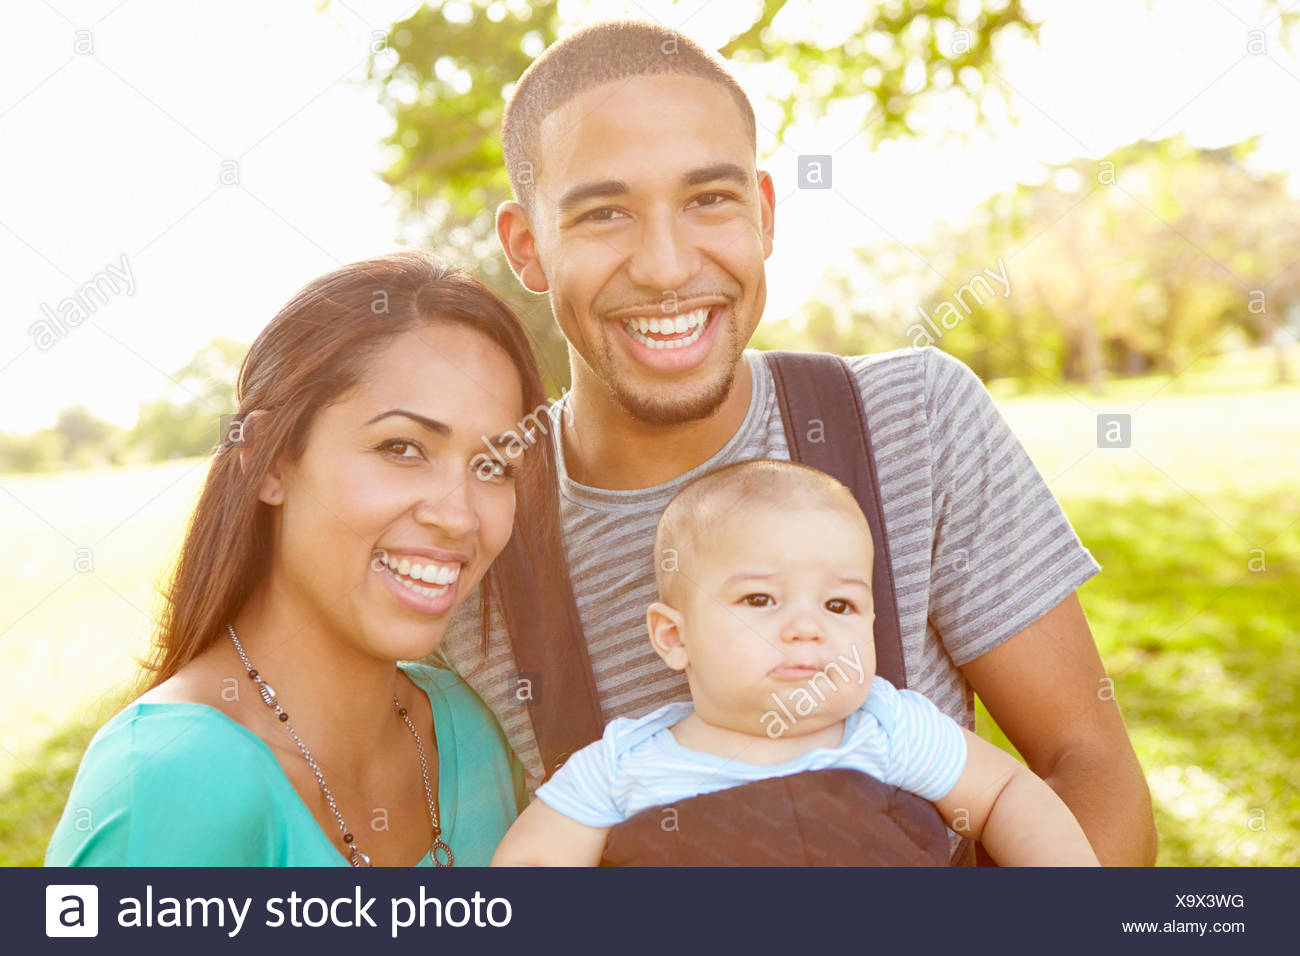 Family With Baby Son In Carrier Walking Through Park - Stock Image